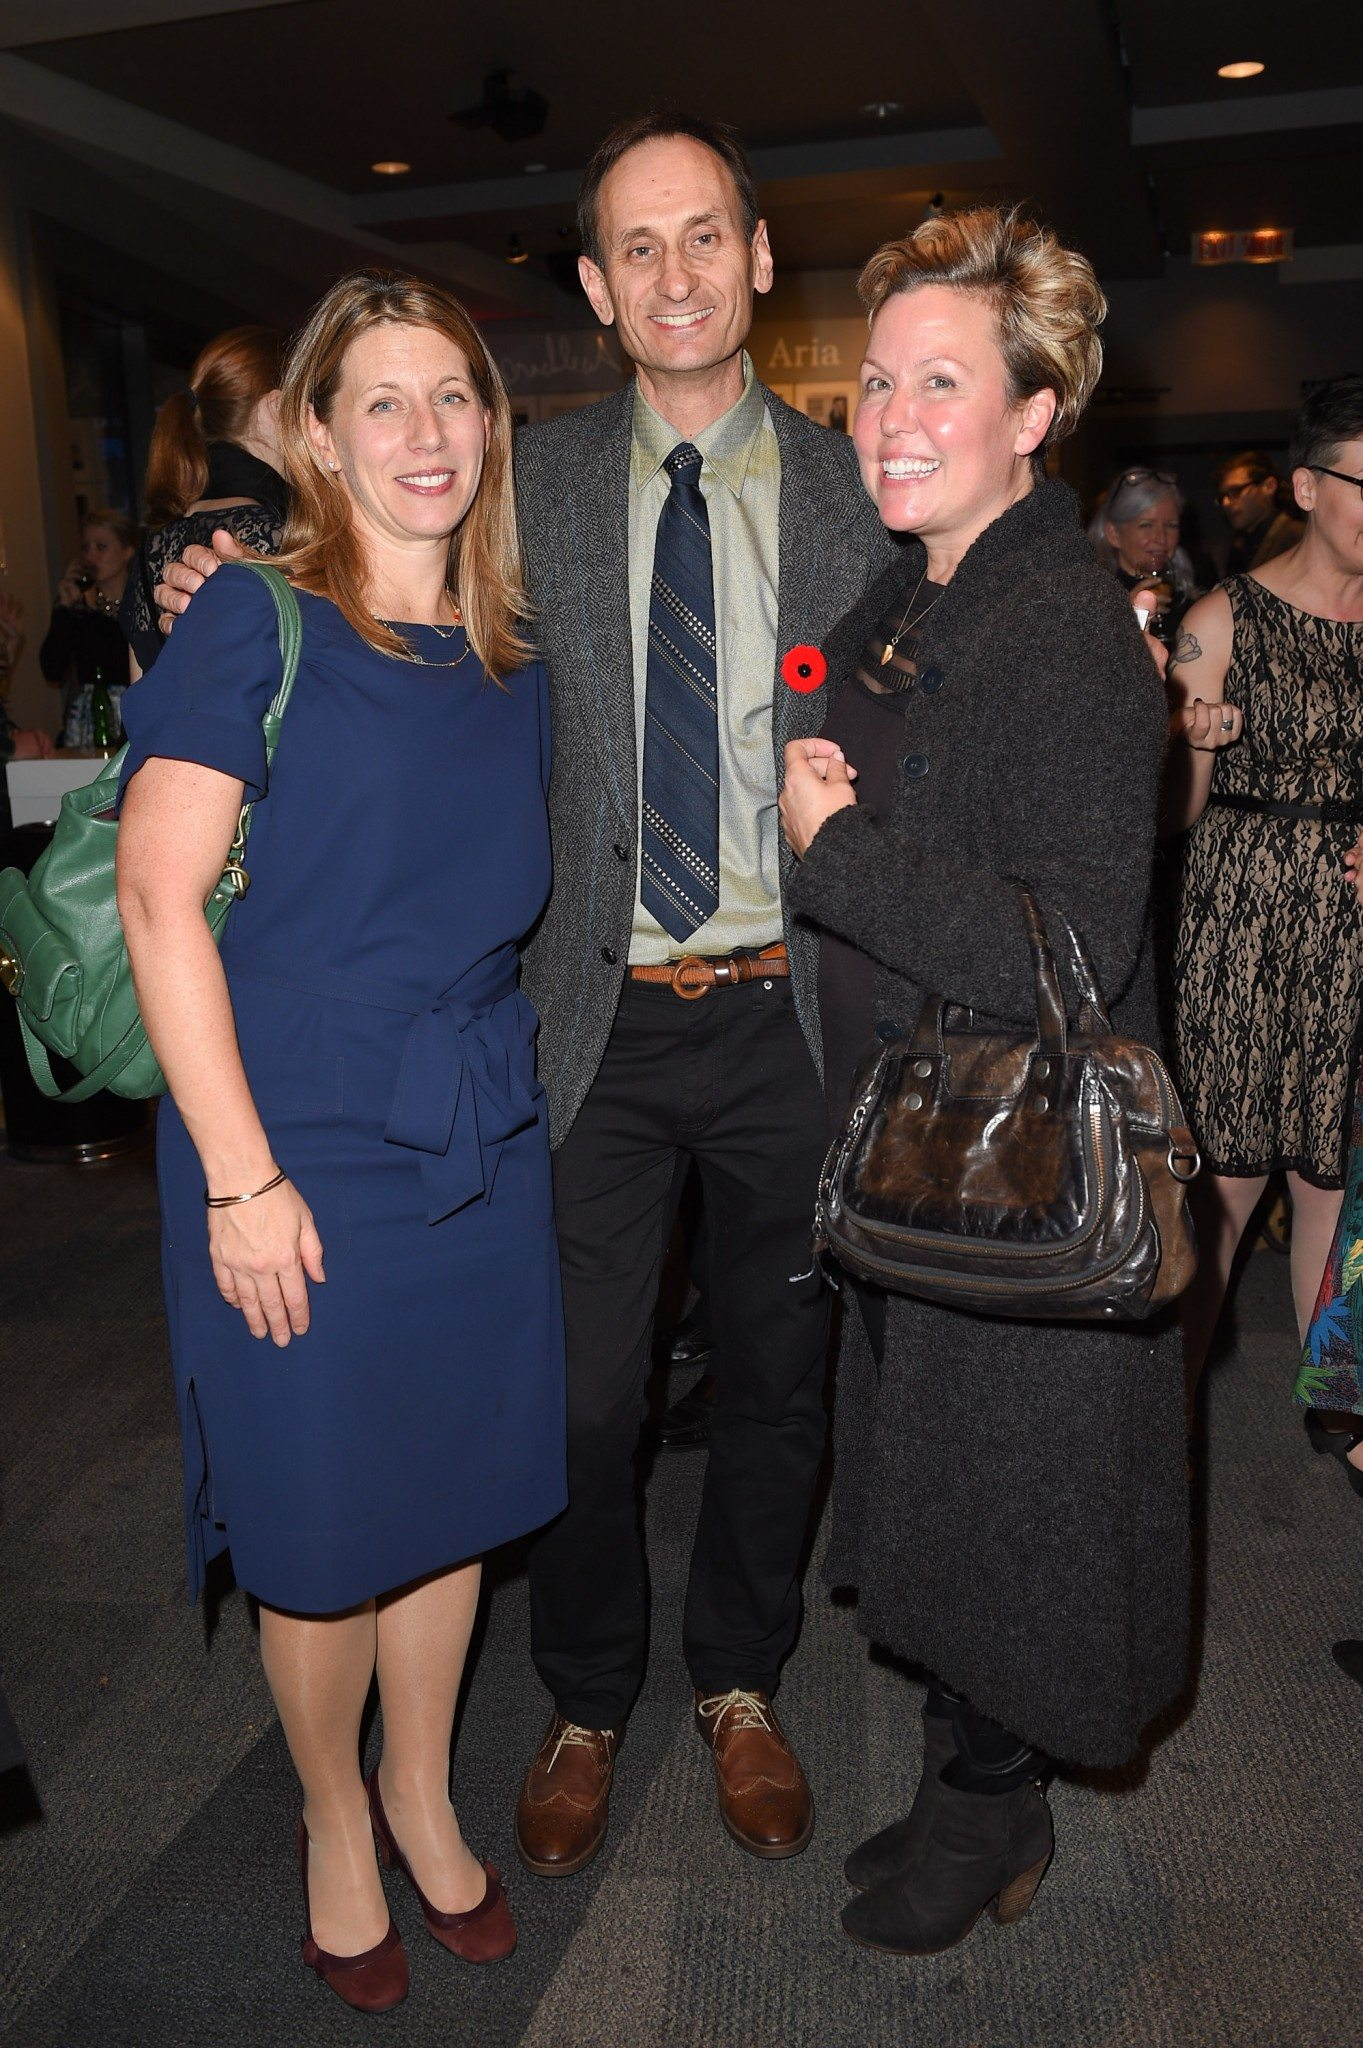 jennifer Lambert, Alan Cumyn, and Kerry Lee Powell (Photo: George Pimentel Photography)